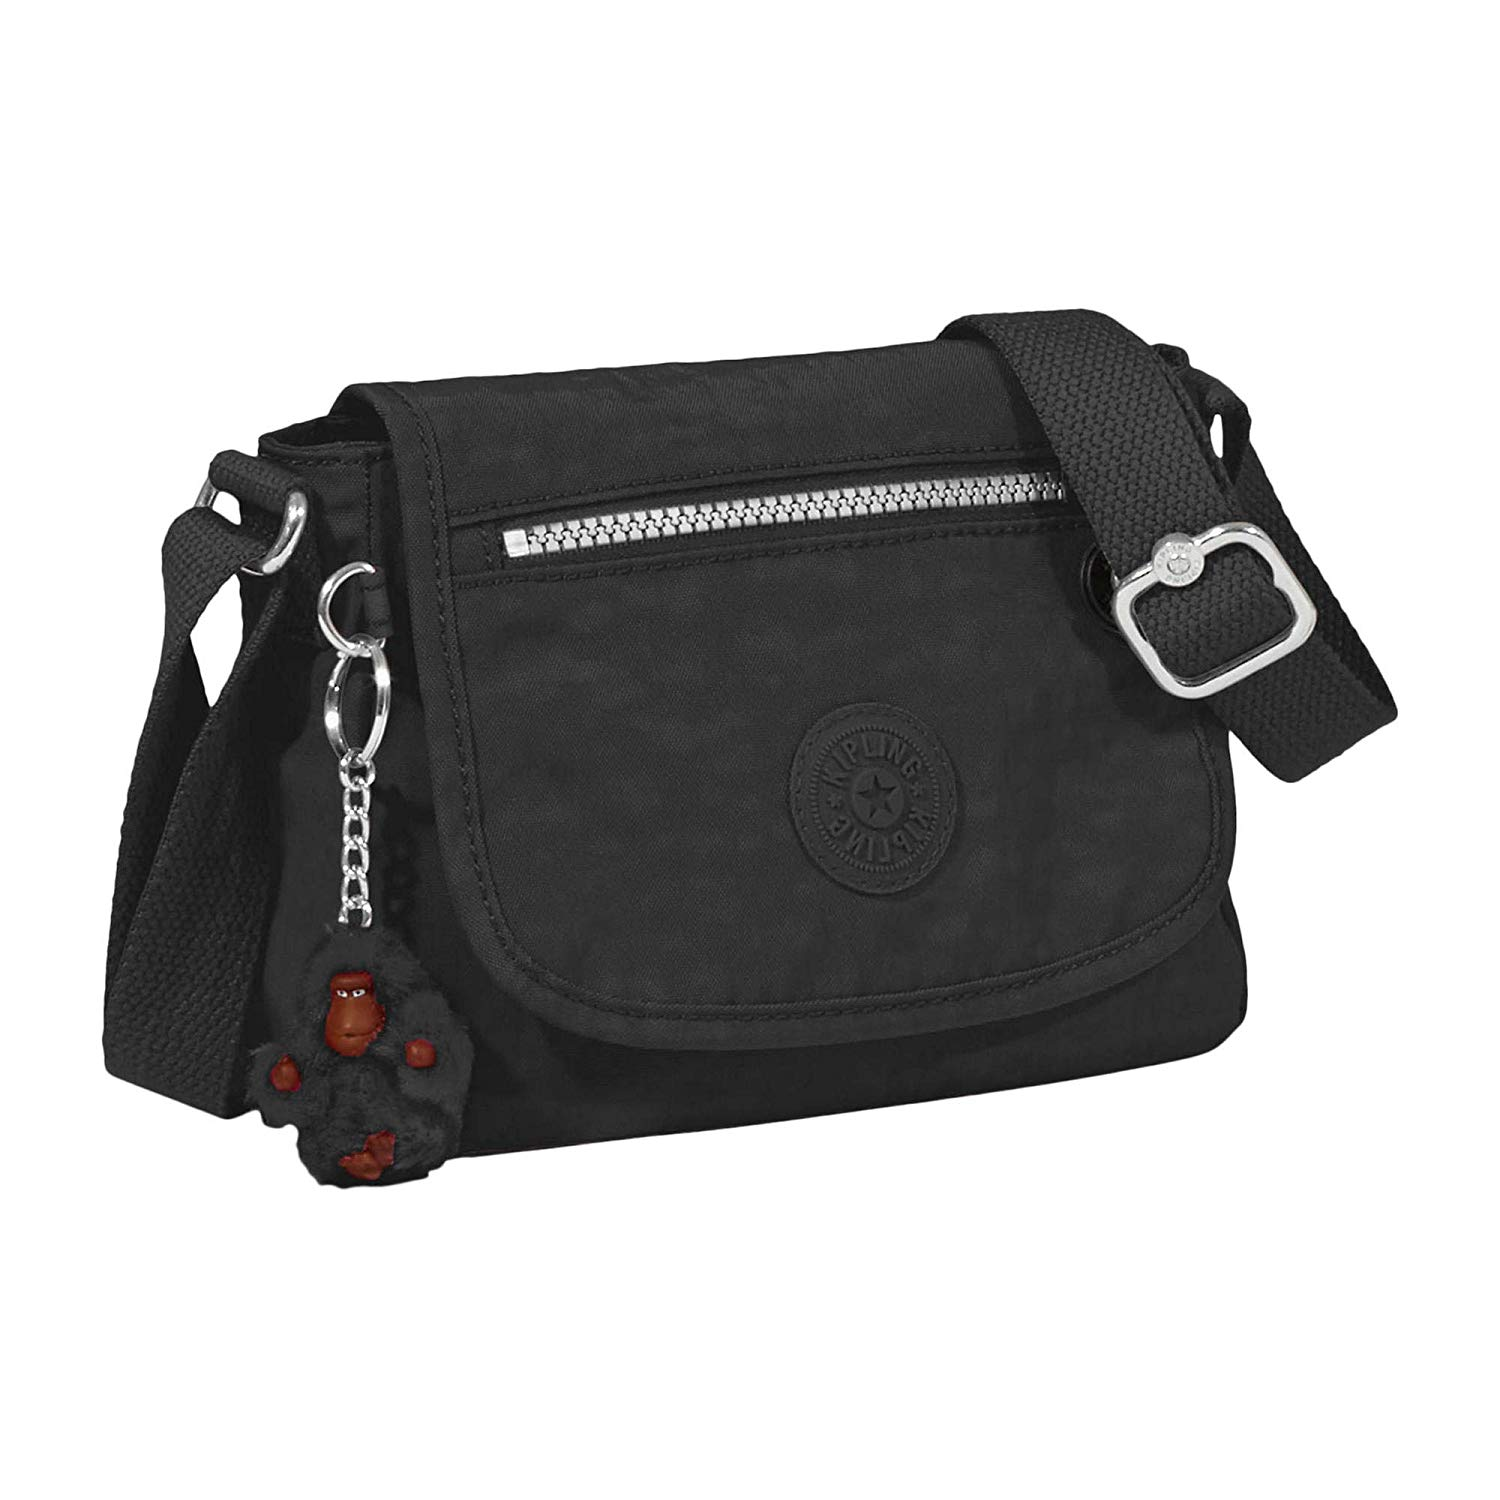 Review of Kipling Sabian Cross Body Mini Bag